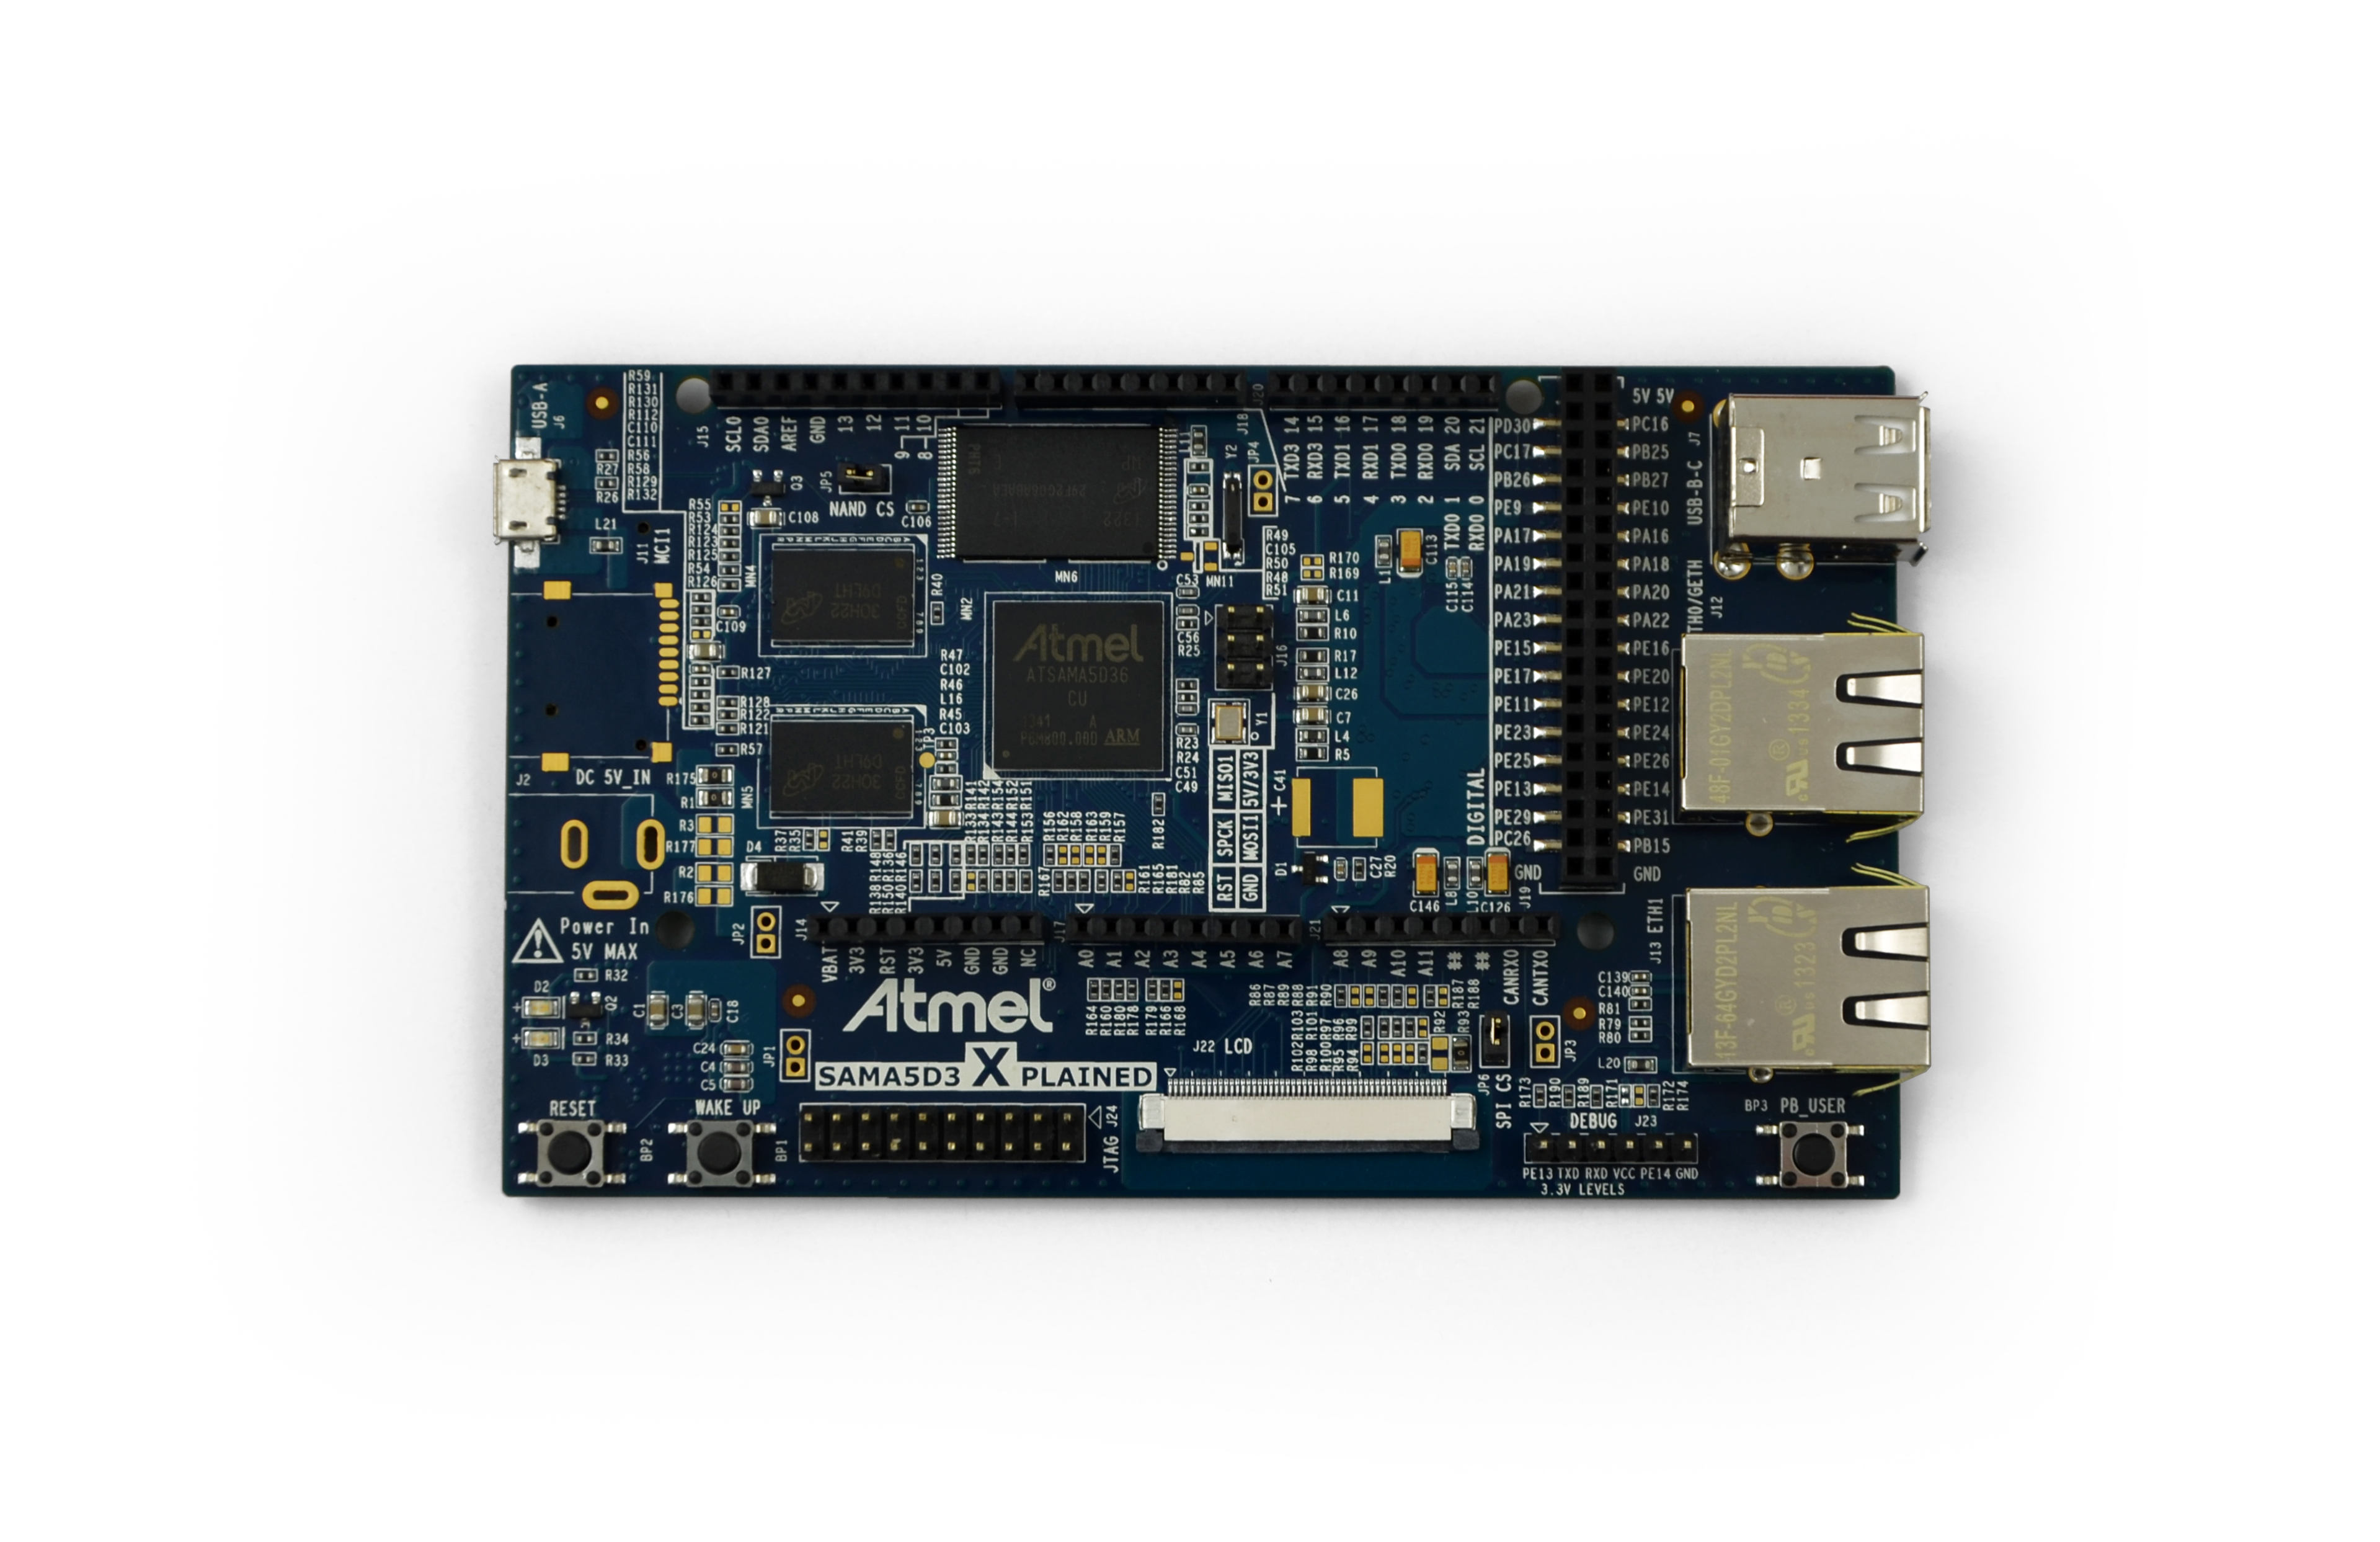 Atmel Xplained - Fast prototyping and evaluation platform based on the SAMA5D3 ARM Cortex-A5. Powerful Atmel's SAMA5D36 Cortex-A5 MPU, 2GBit DDR2 RAM, 2Gbit Flash, Dual Ethernet (GMAC + EMAC), Arduino R3-compatible header and LCD connector.